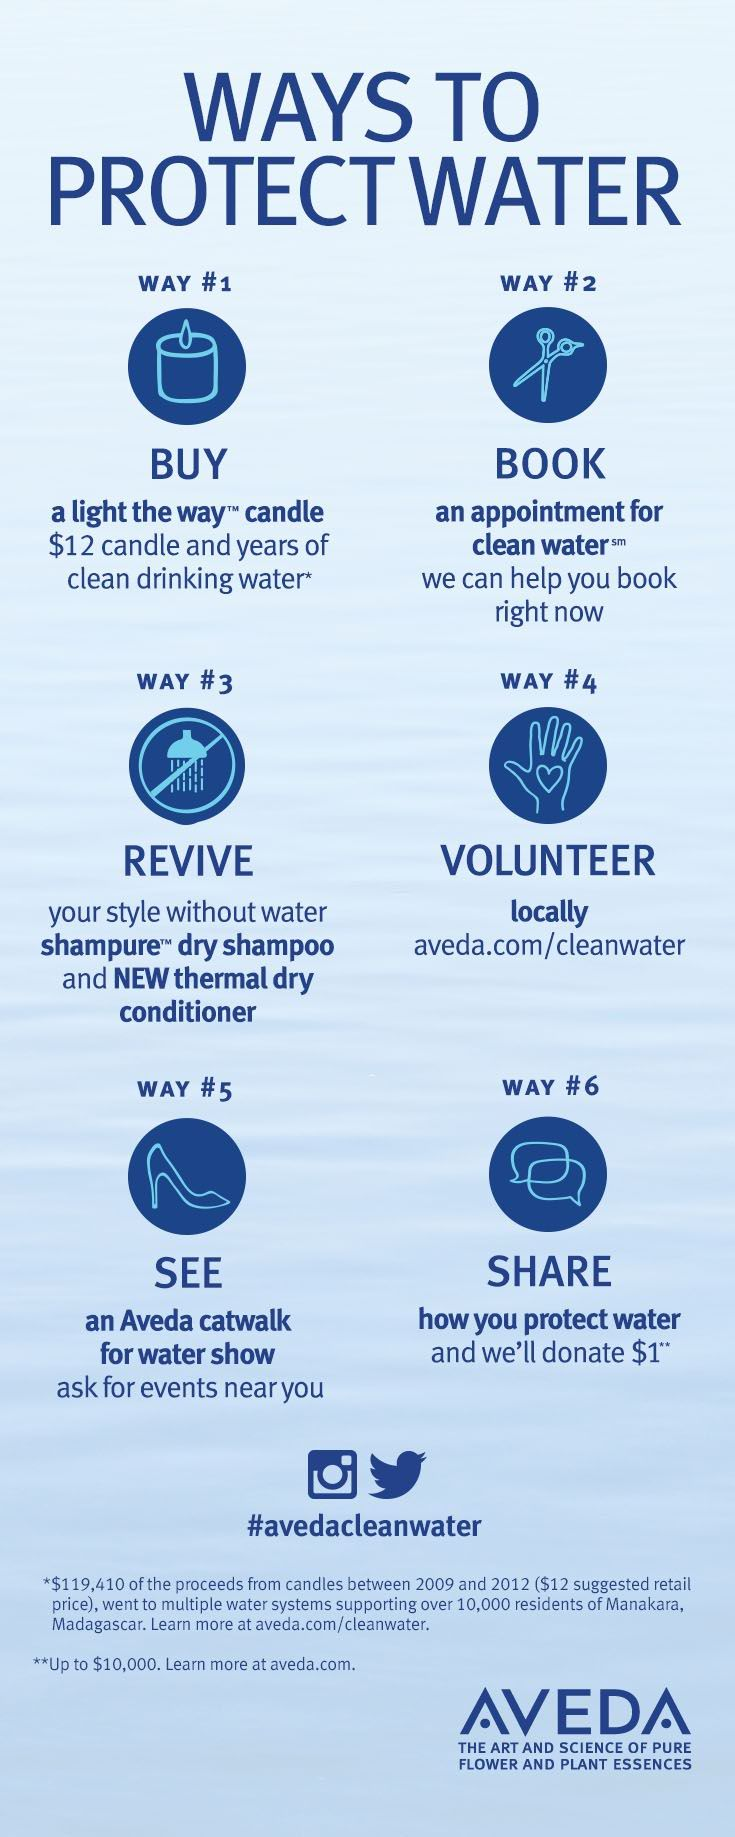 15 Best Aveda Walk For Water Images On Pinterest Aveda Hiking And